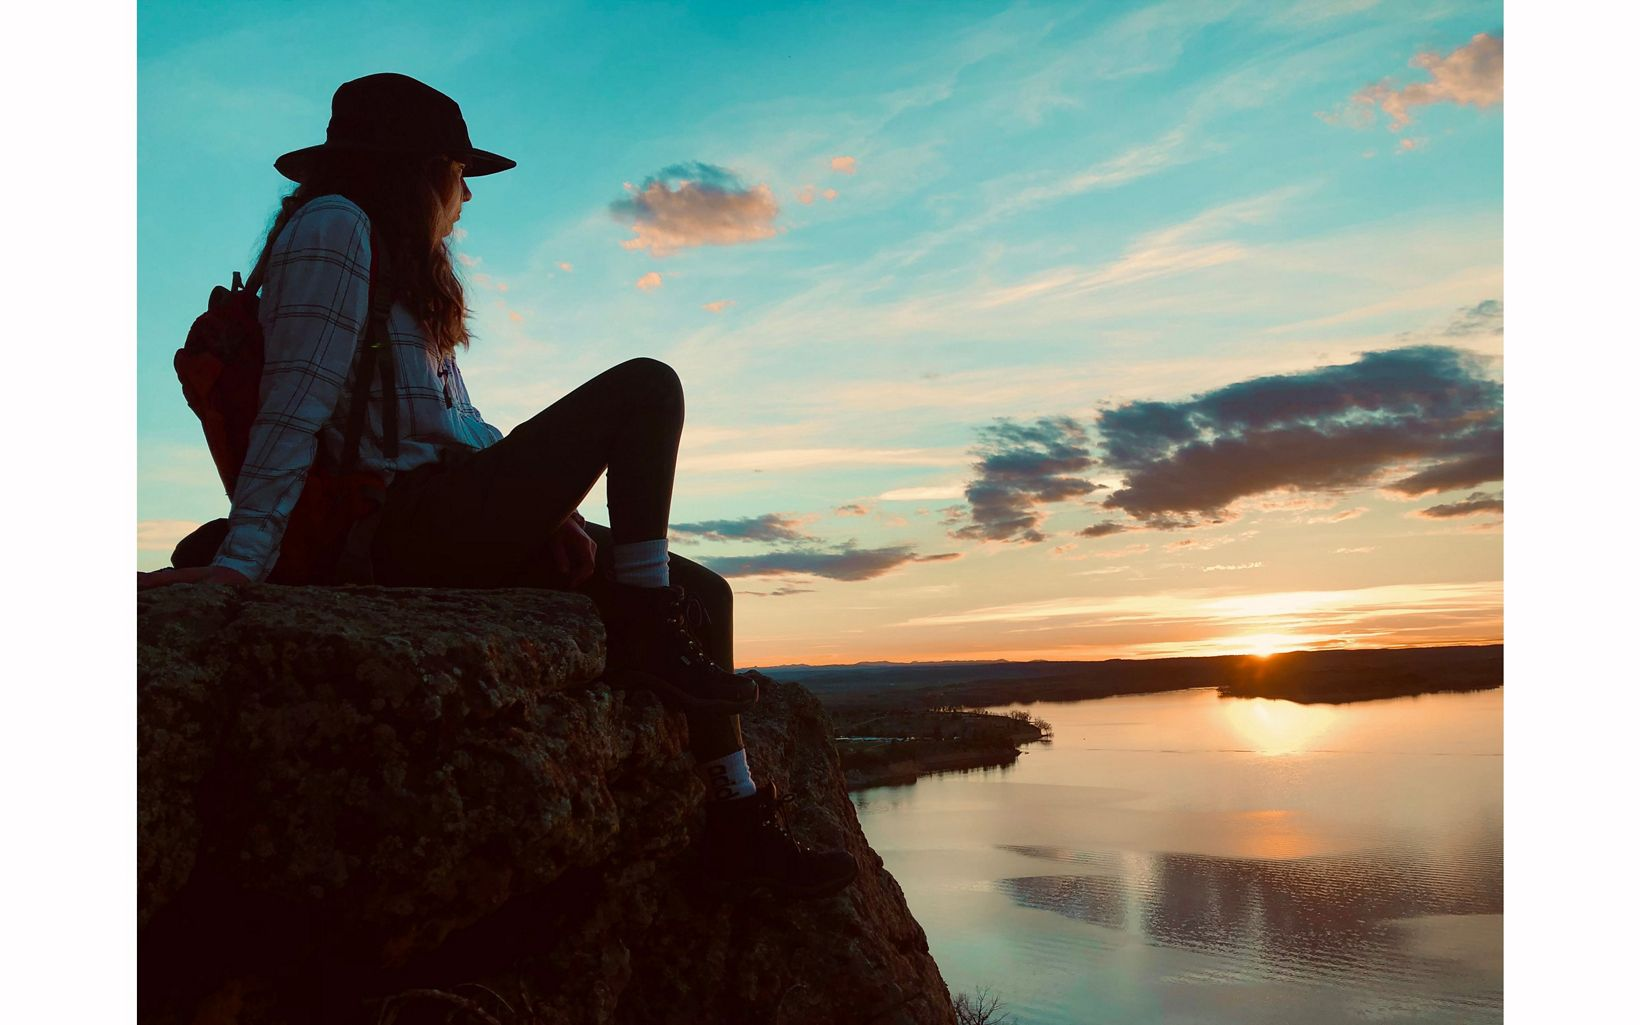 Person sits on rock next to water at sunset.